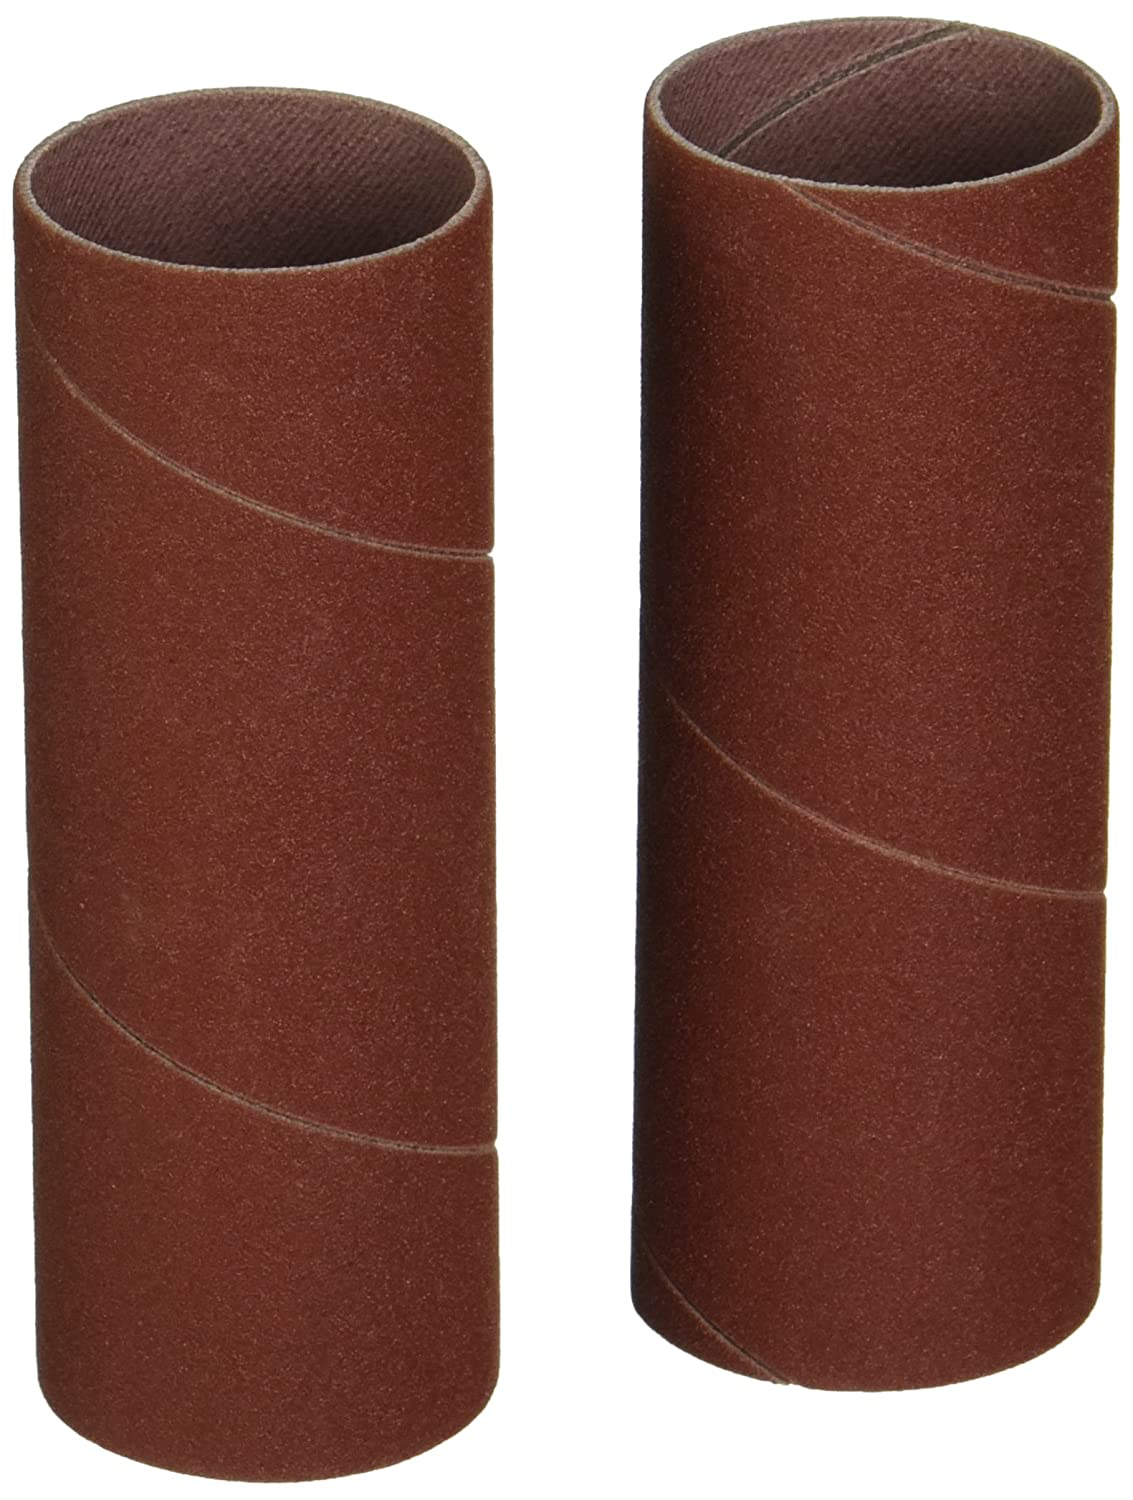 PORTER-CABLE 771501502 1 1//2-Inch Spindle 150 Grit Sanding Sleeve 2-Pack